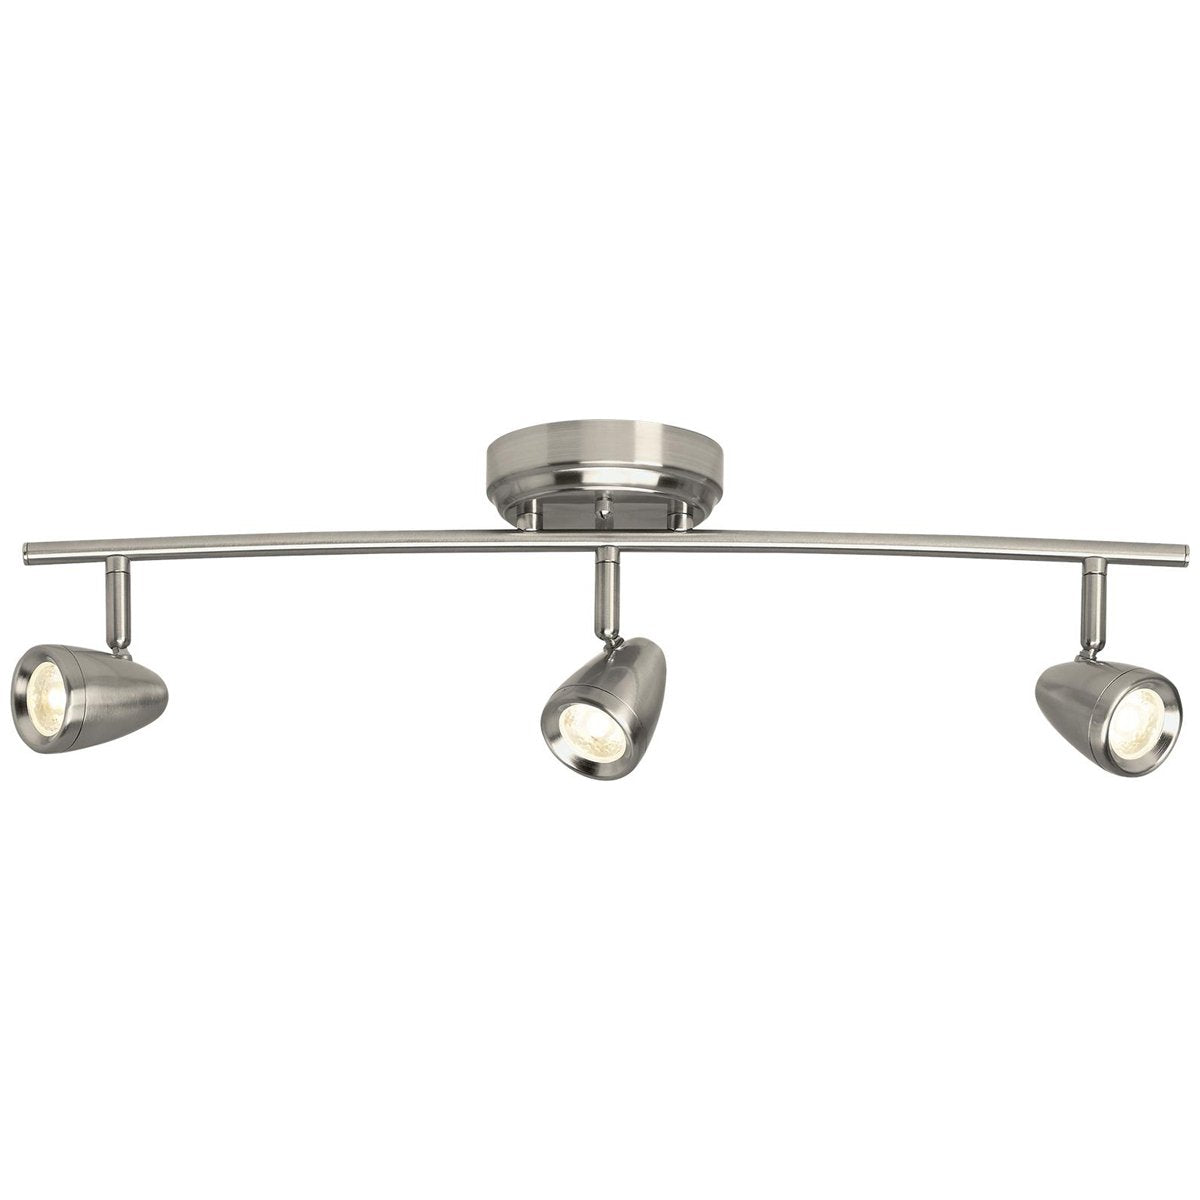 Sea Gull Lighting 3-Light LED Track Light